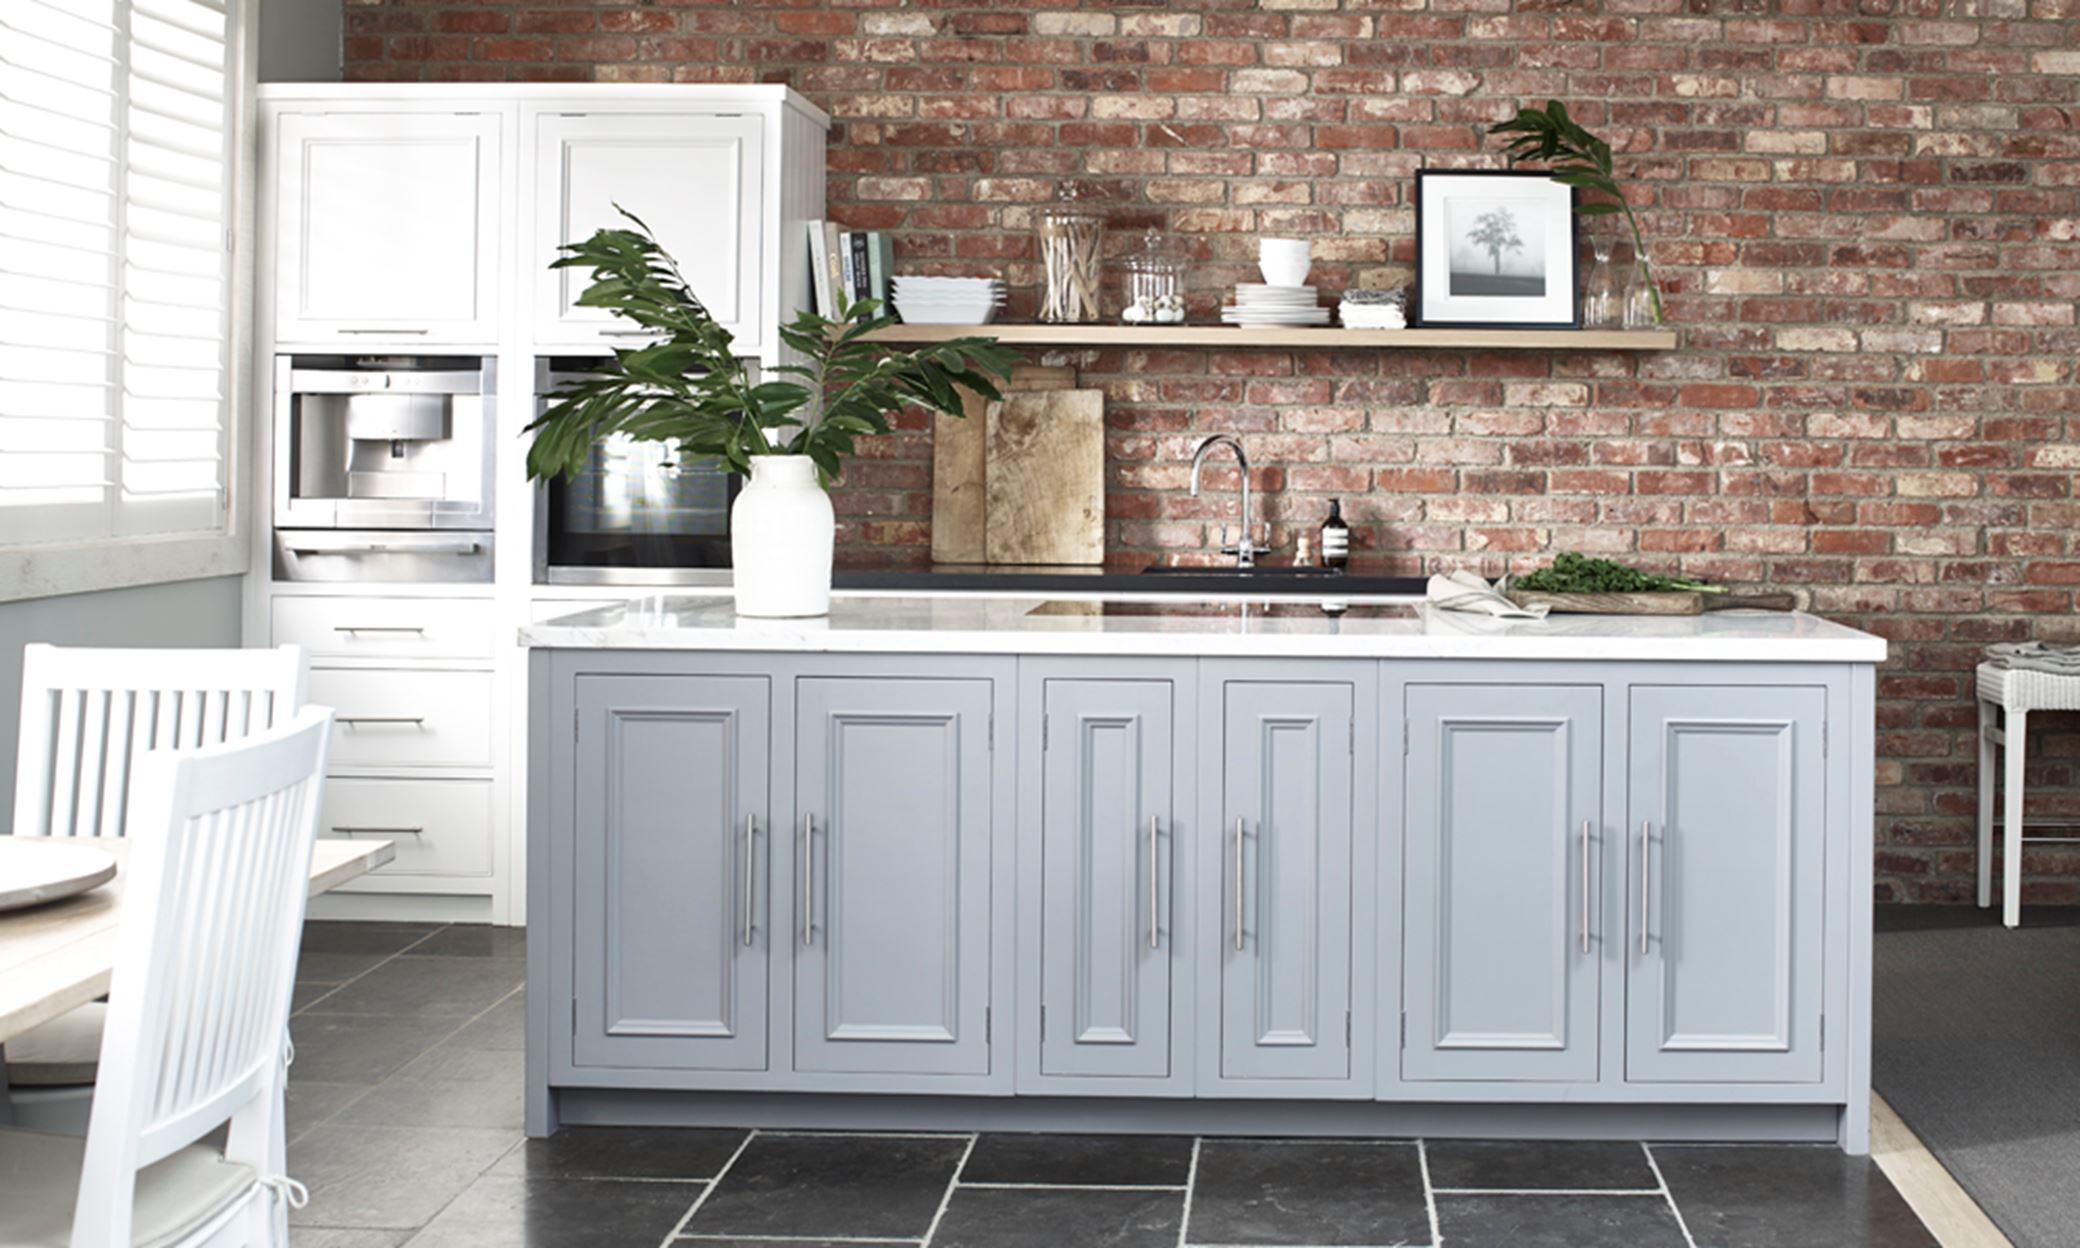 Kitchens - Classic, Shaker & Contemporary | Neptune | Ideas for the ...